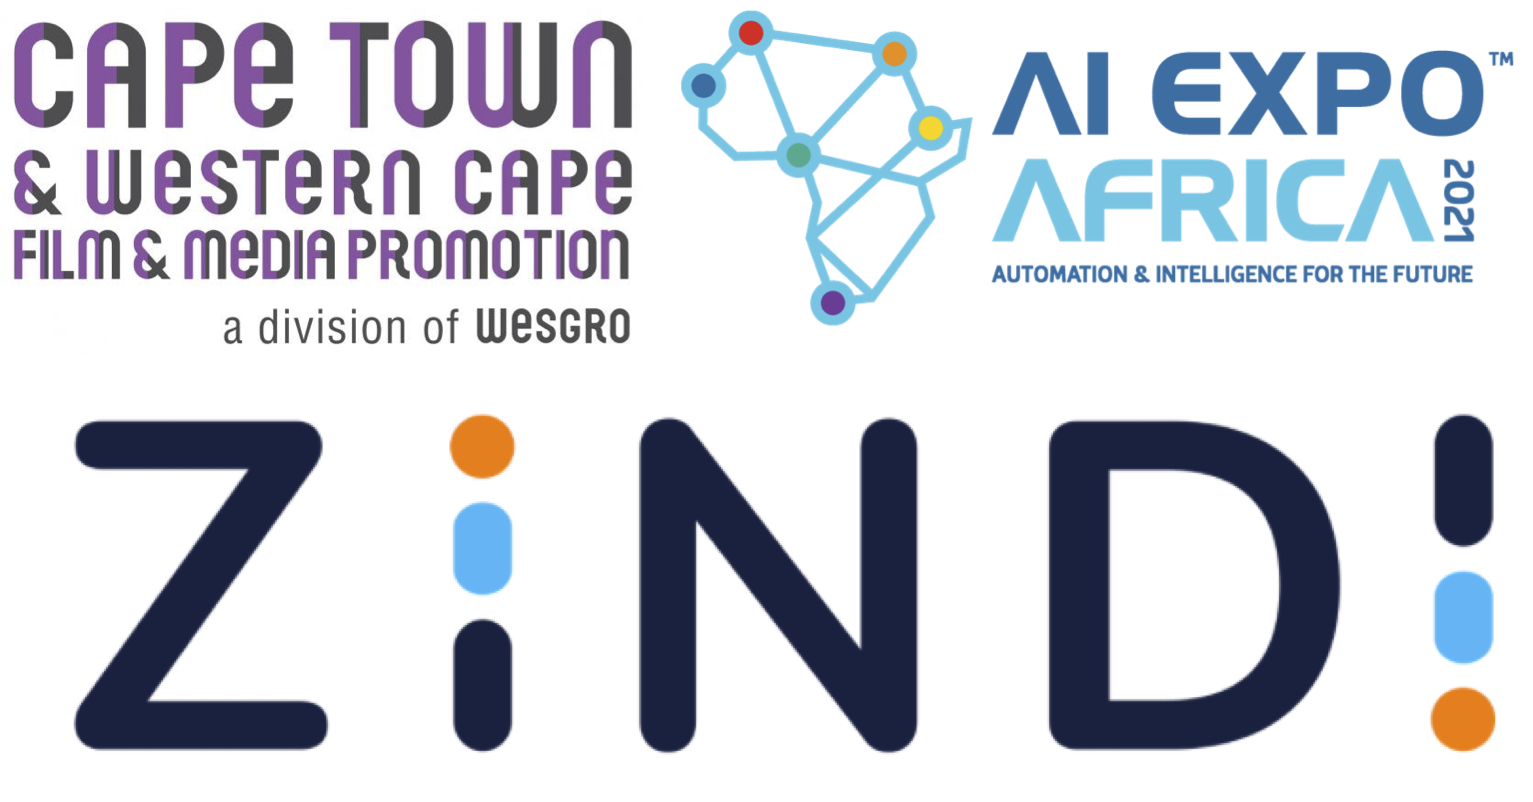 The Wesgro Film & Media Production Unit, Cape Town and AI Expo Africa have teamed up with the Zindi data science challenge platform, Zindi to run this challenge.